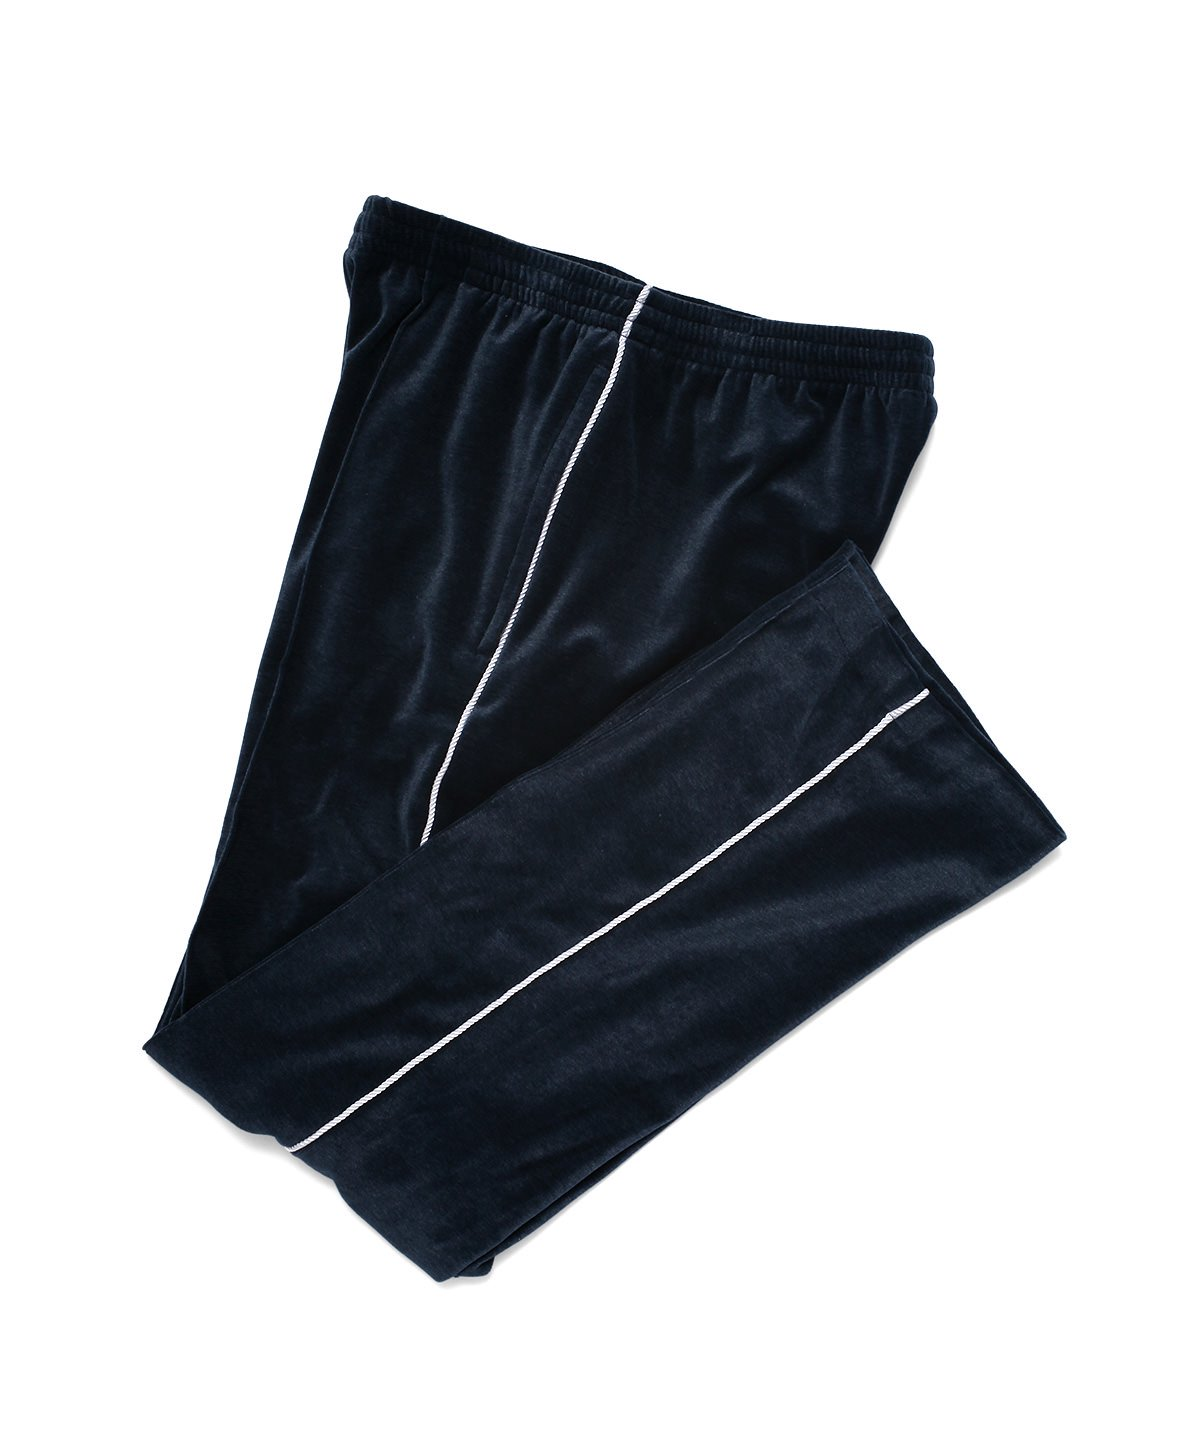 US OLYMPIC TRAINING PANTS